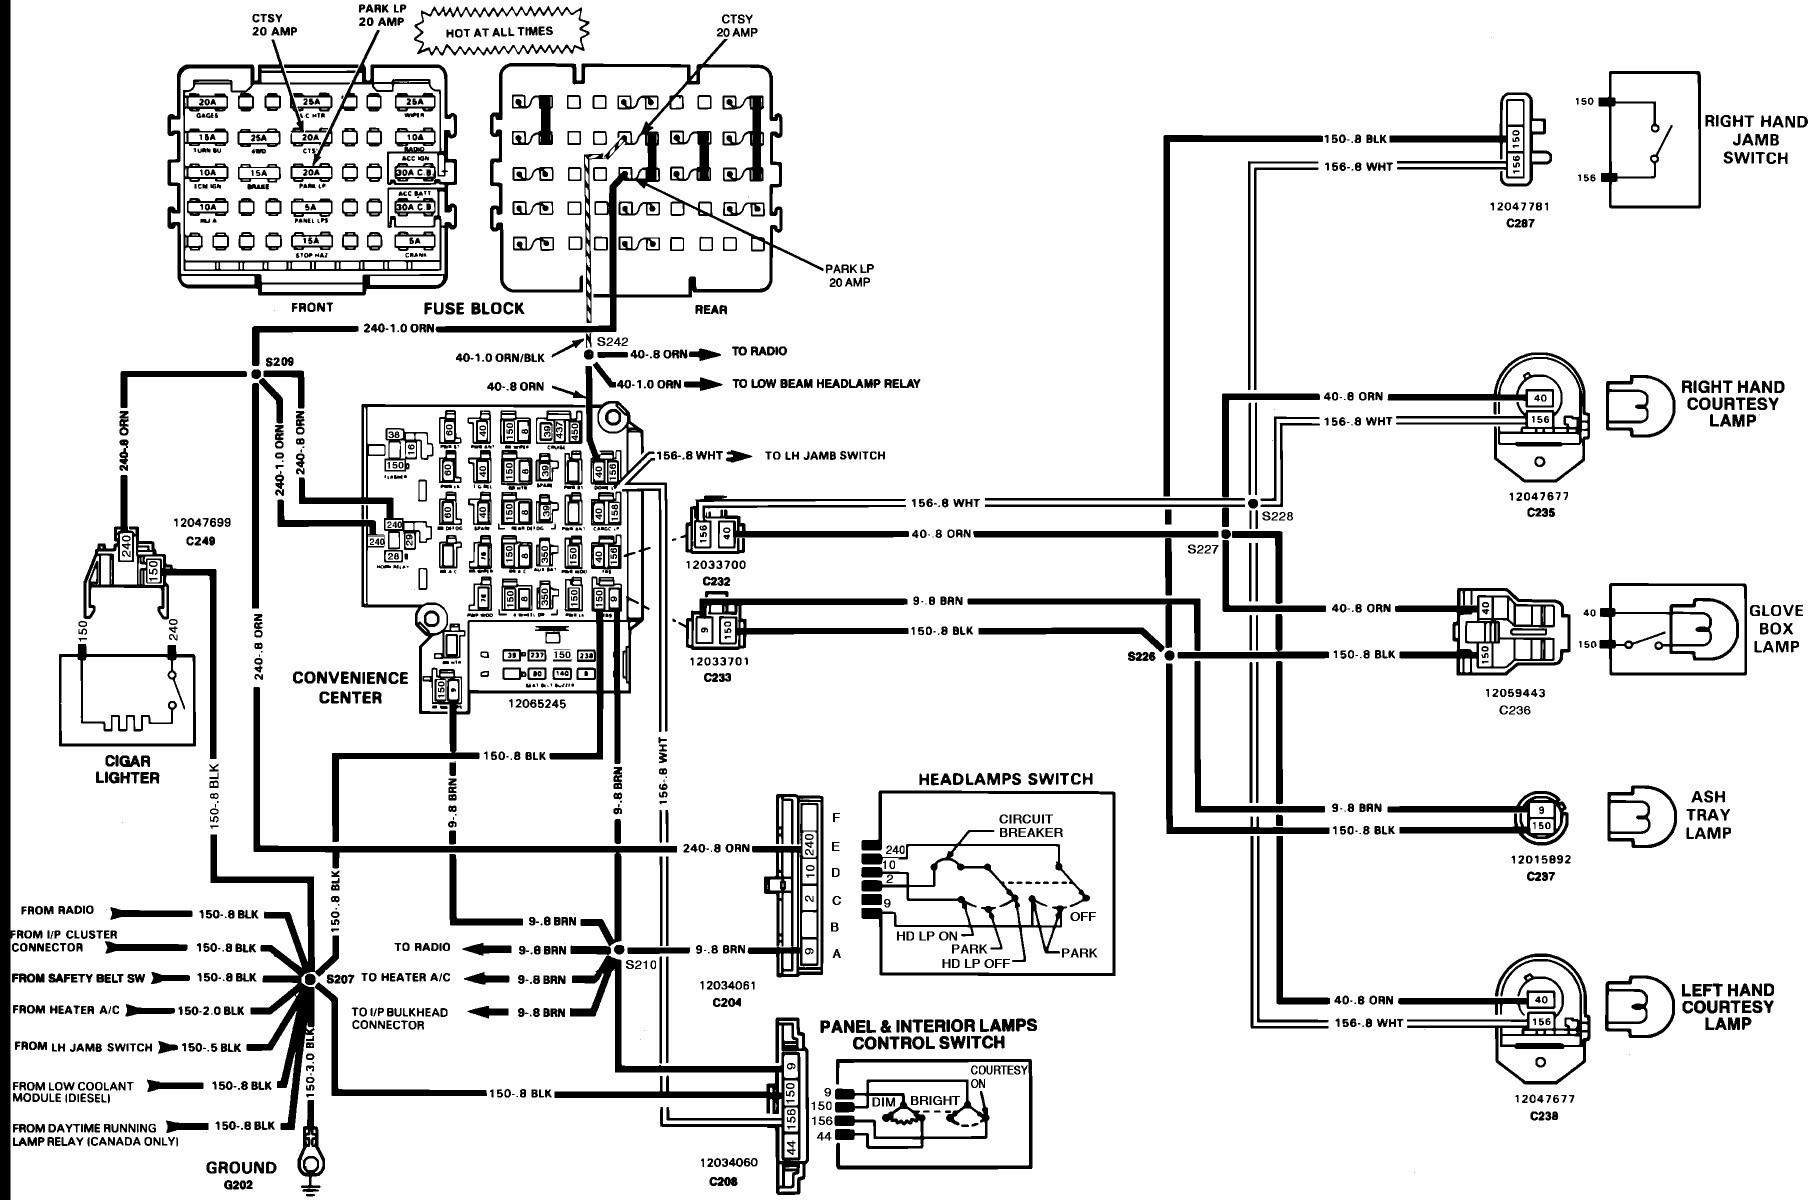 Remarkable Mopar Alternator Wiring Diagram Wiring Library Wiring 101 Ivorowellnesstrialsorg